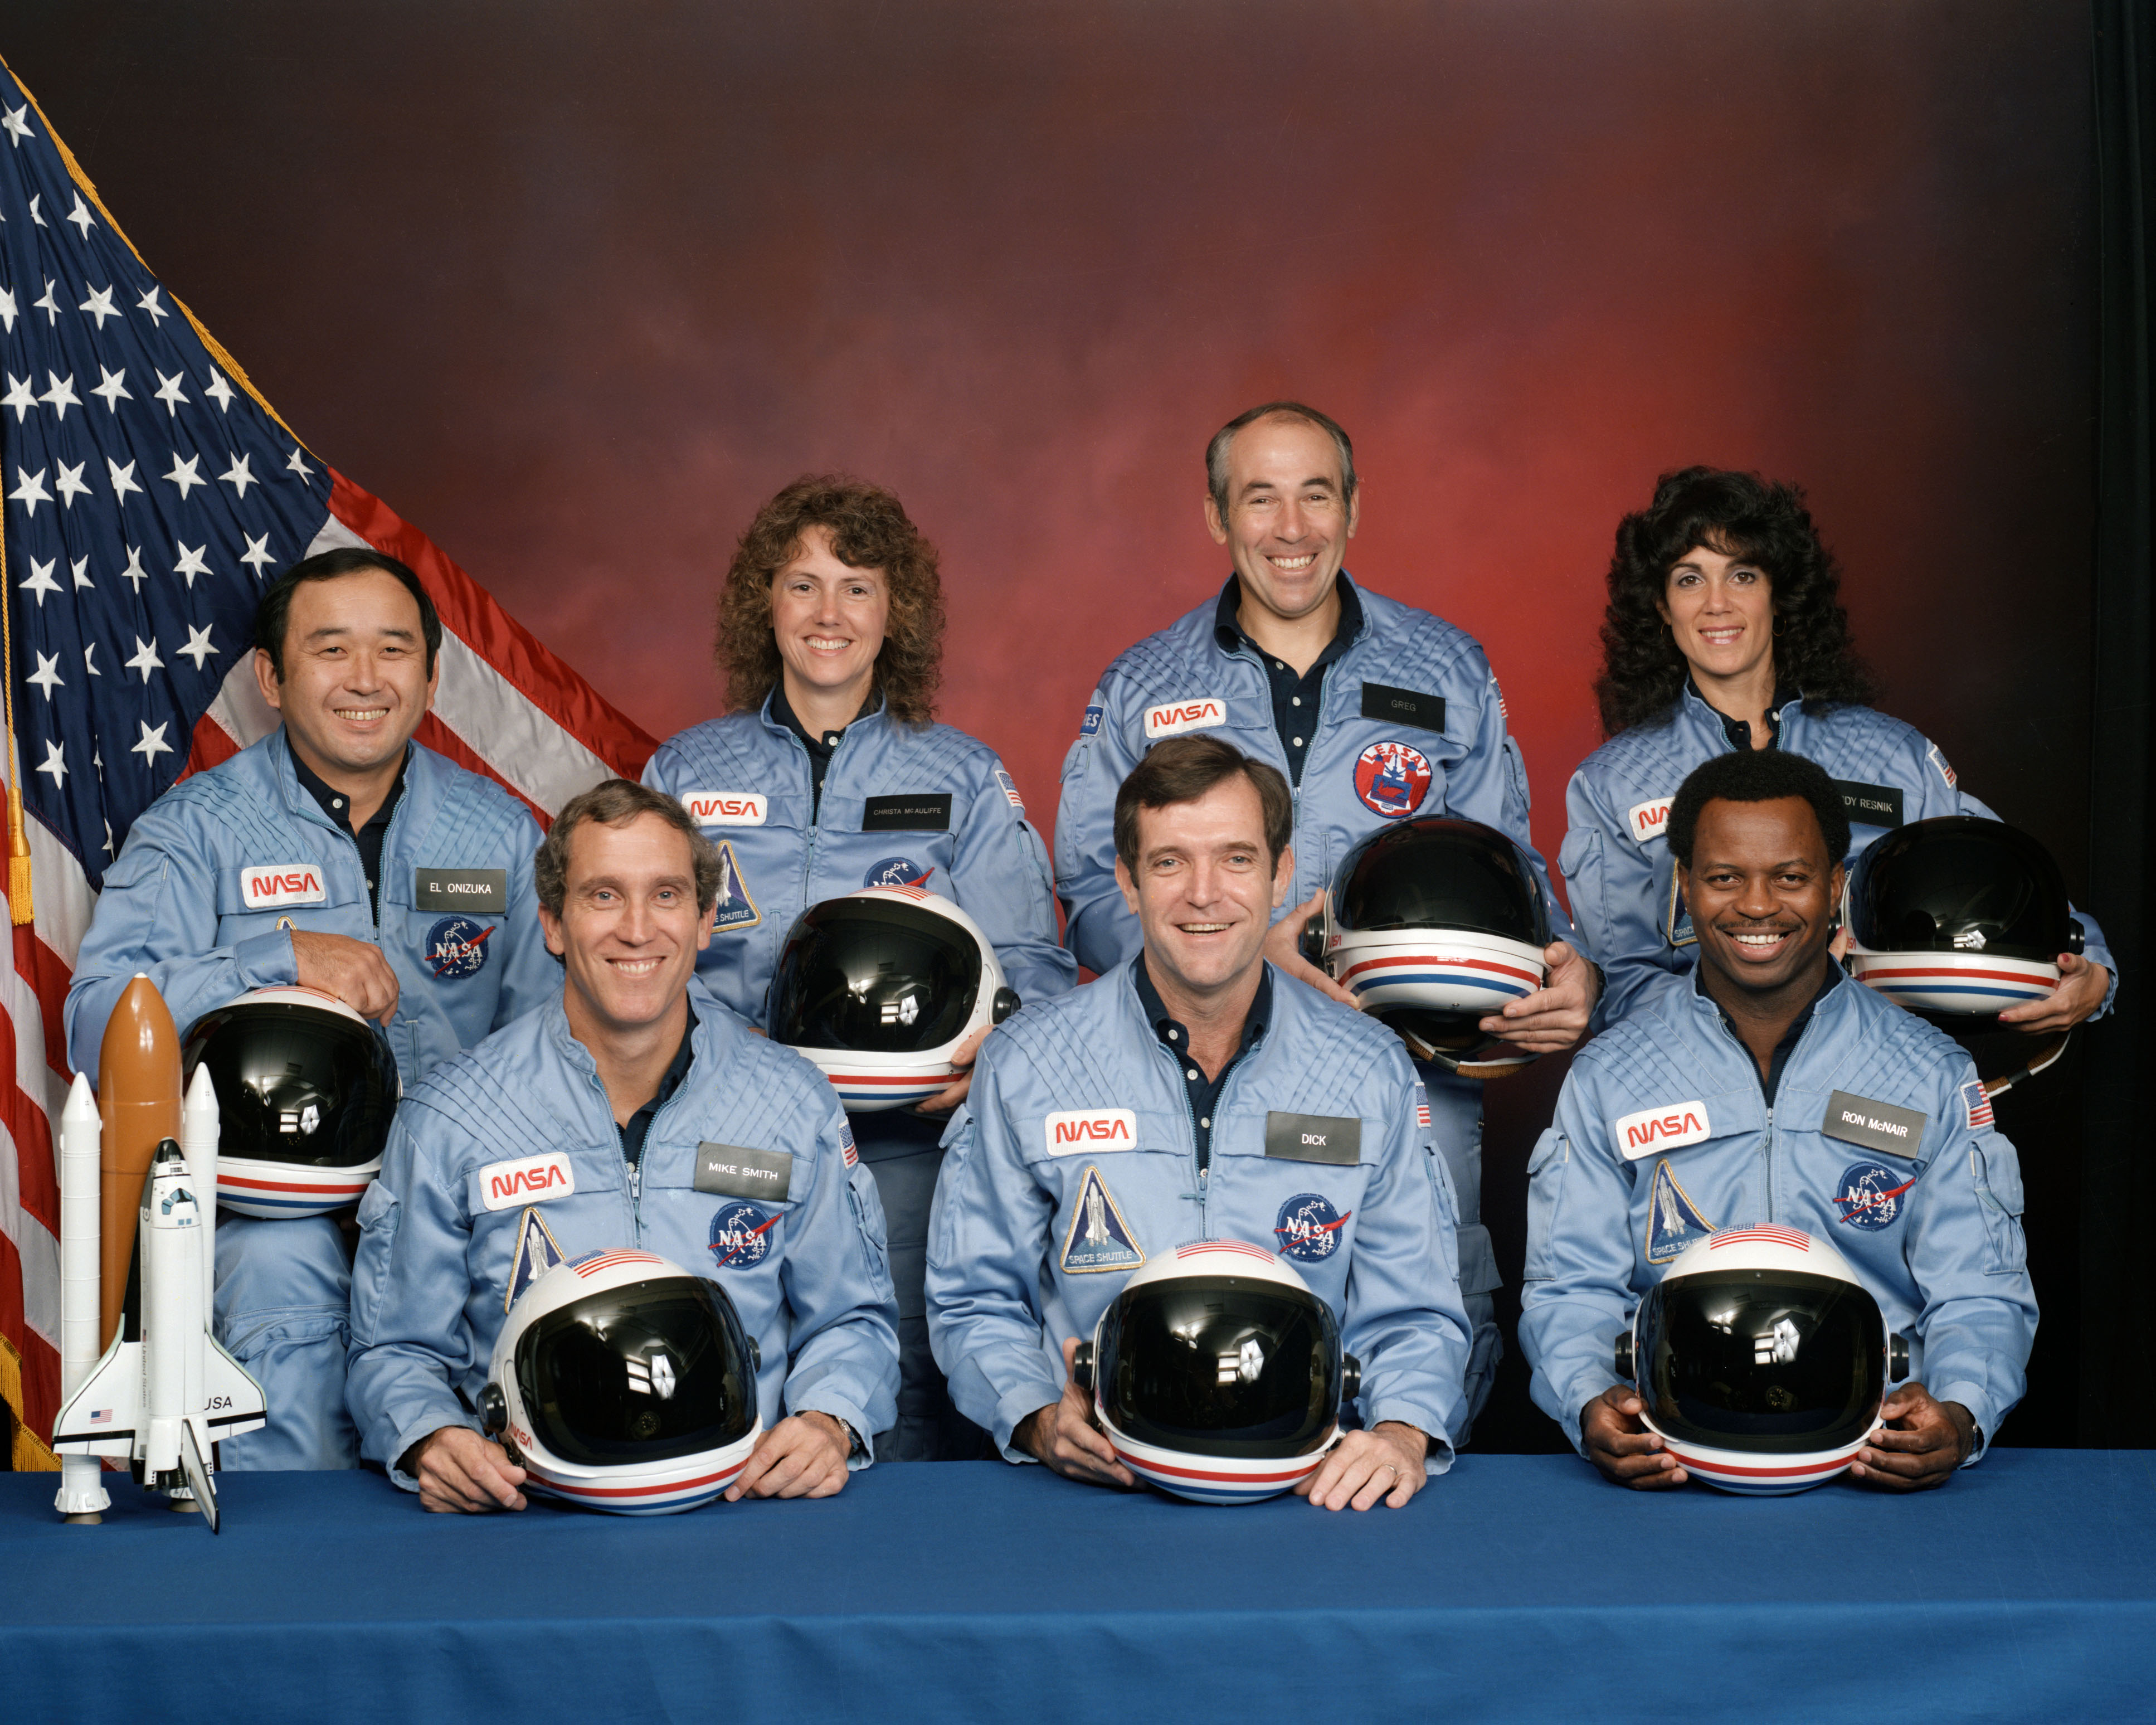 5 Things You May Not Know About the Challenger Shuttle ...